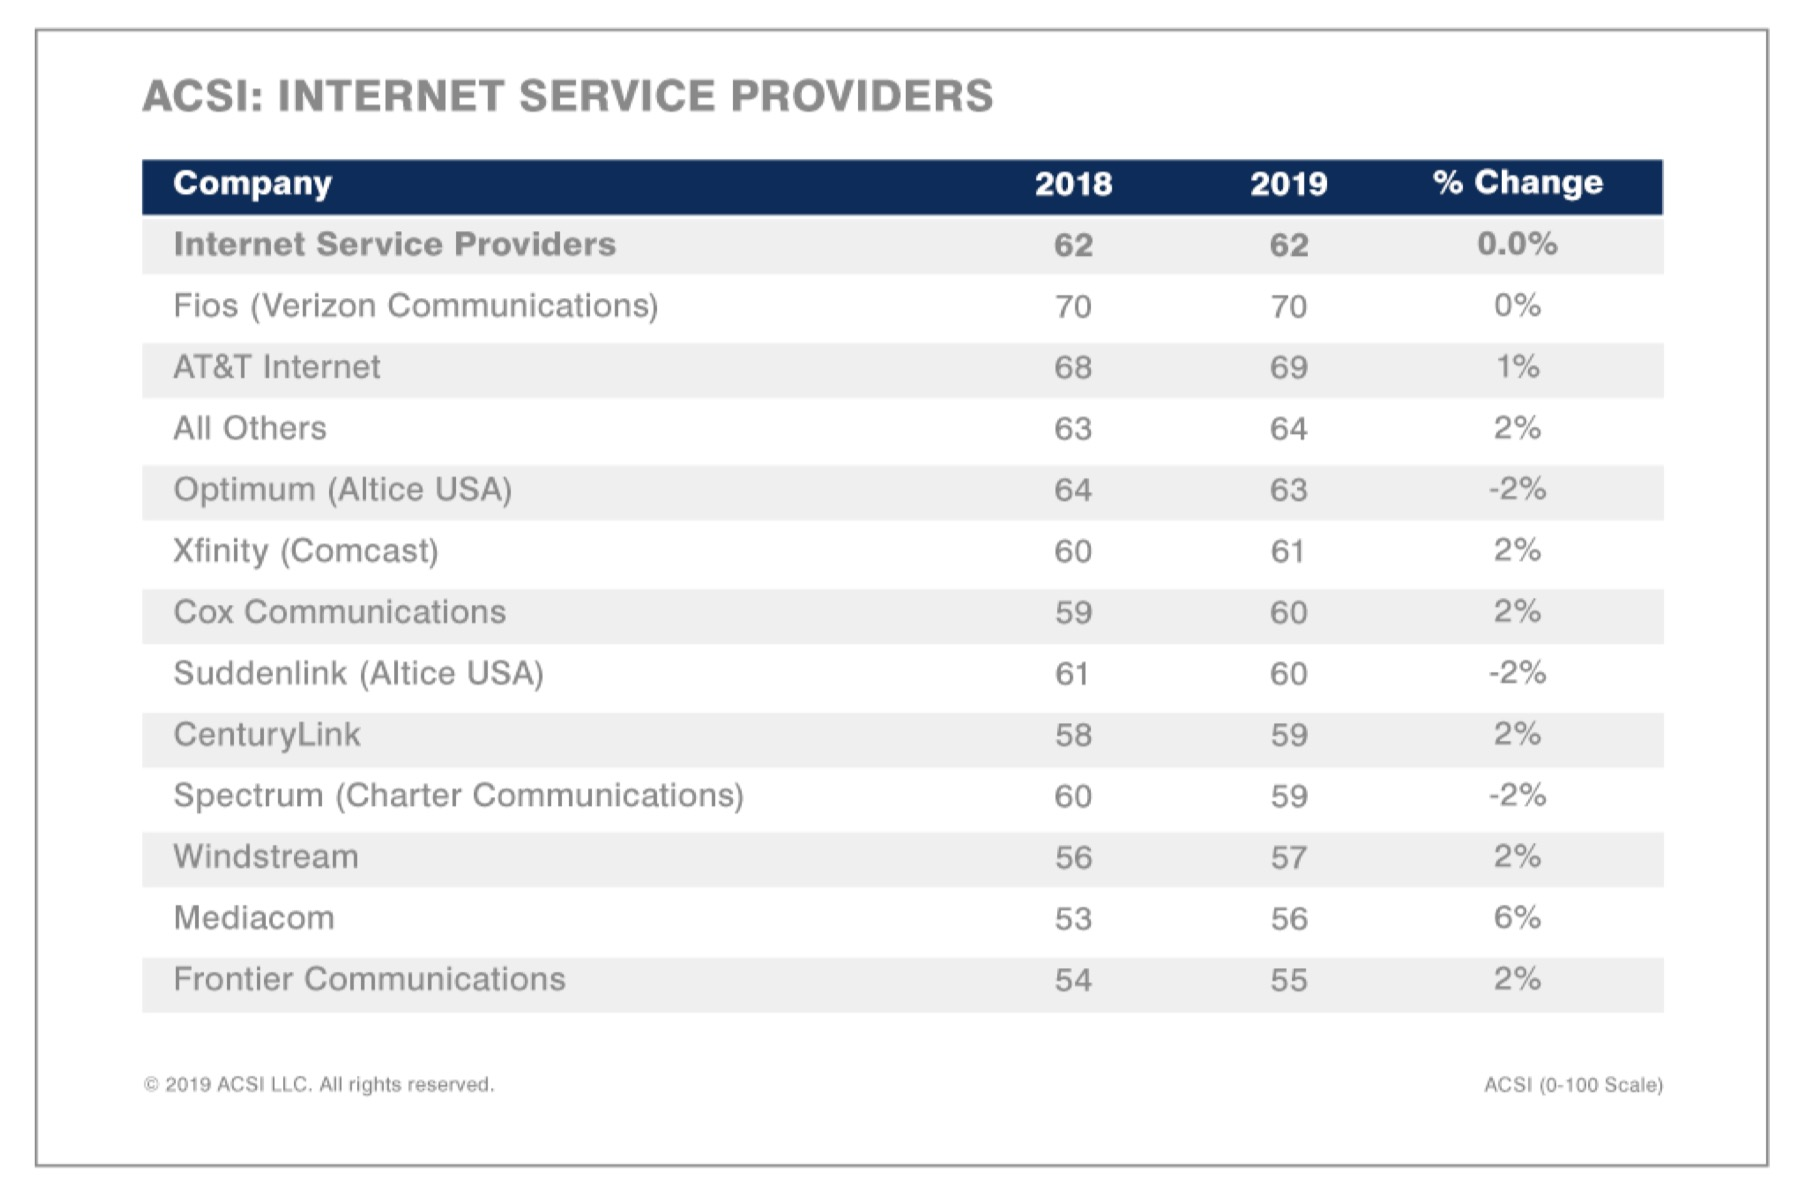 The ACSI's Internet service provider ranking for 2019.